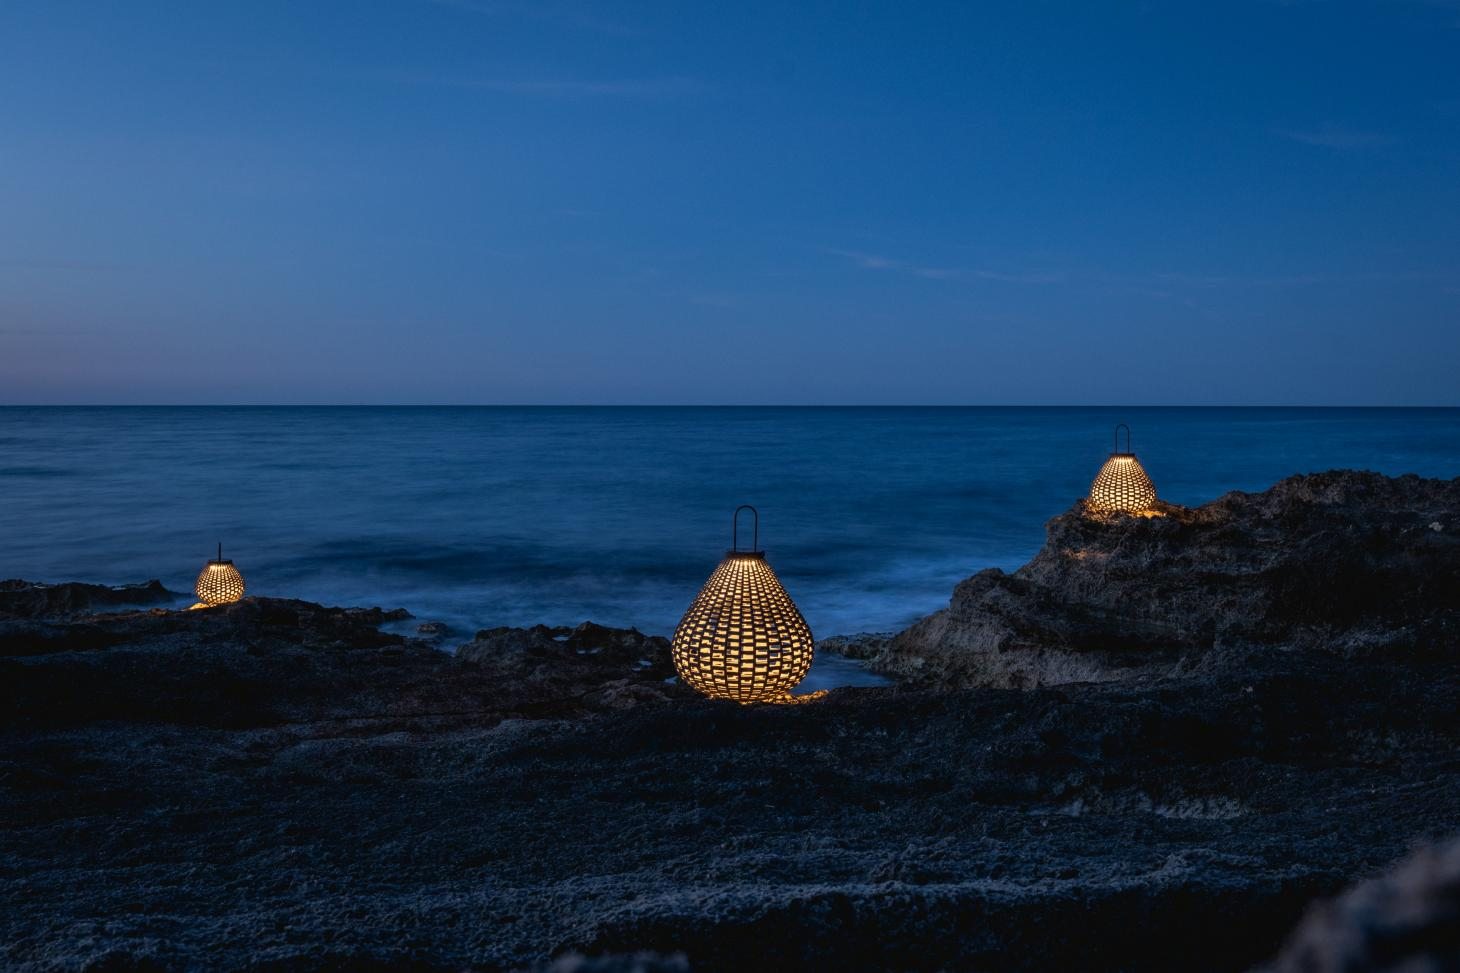 Three woven lanterns photographed on rocks by the sea at dusk